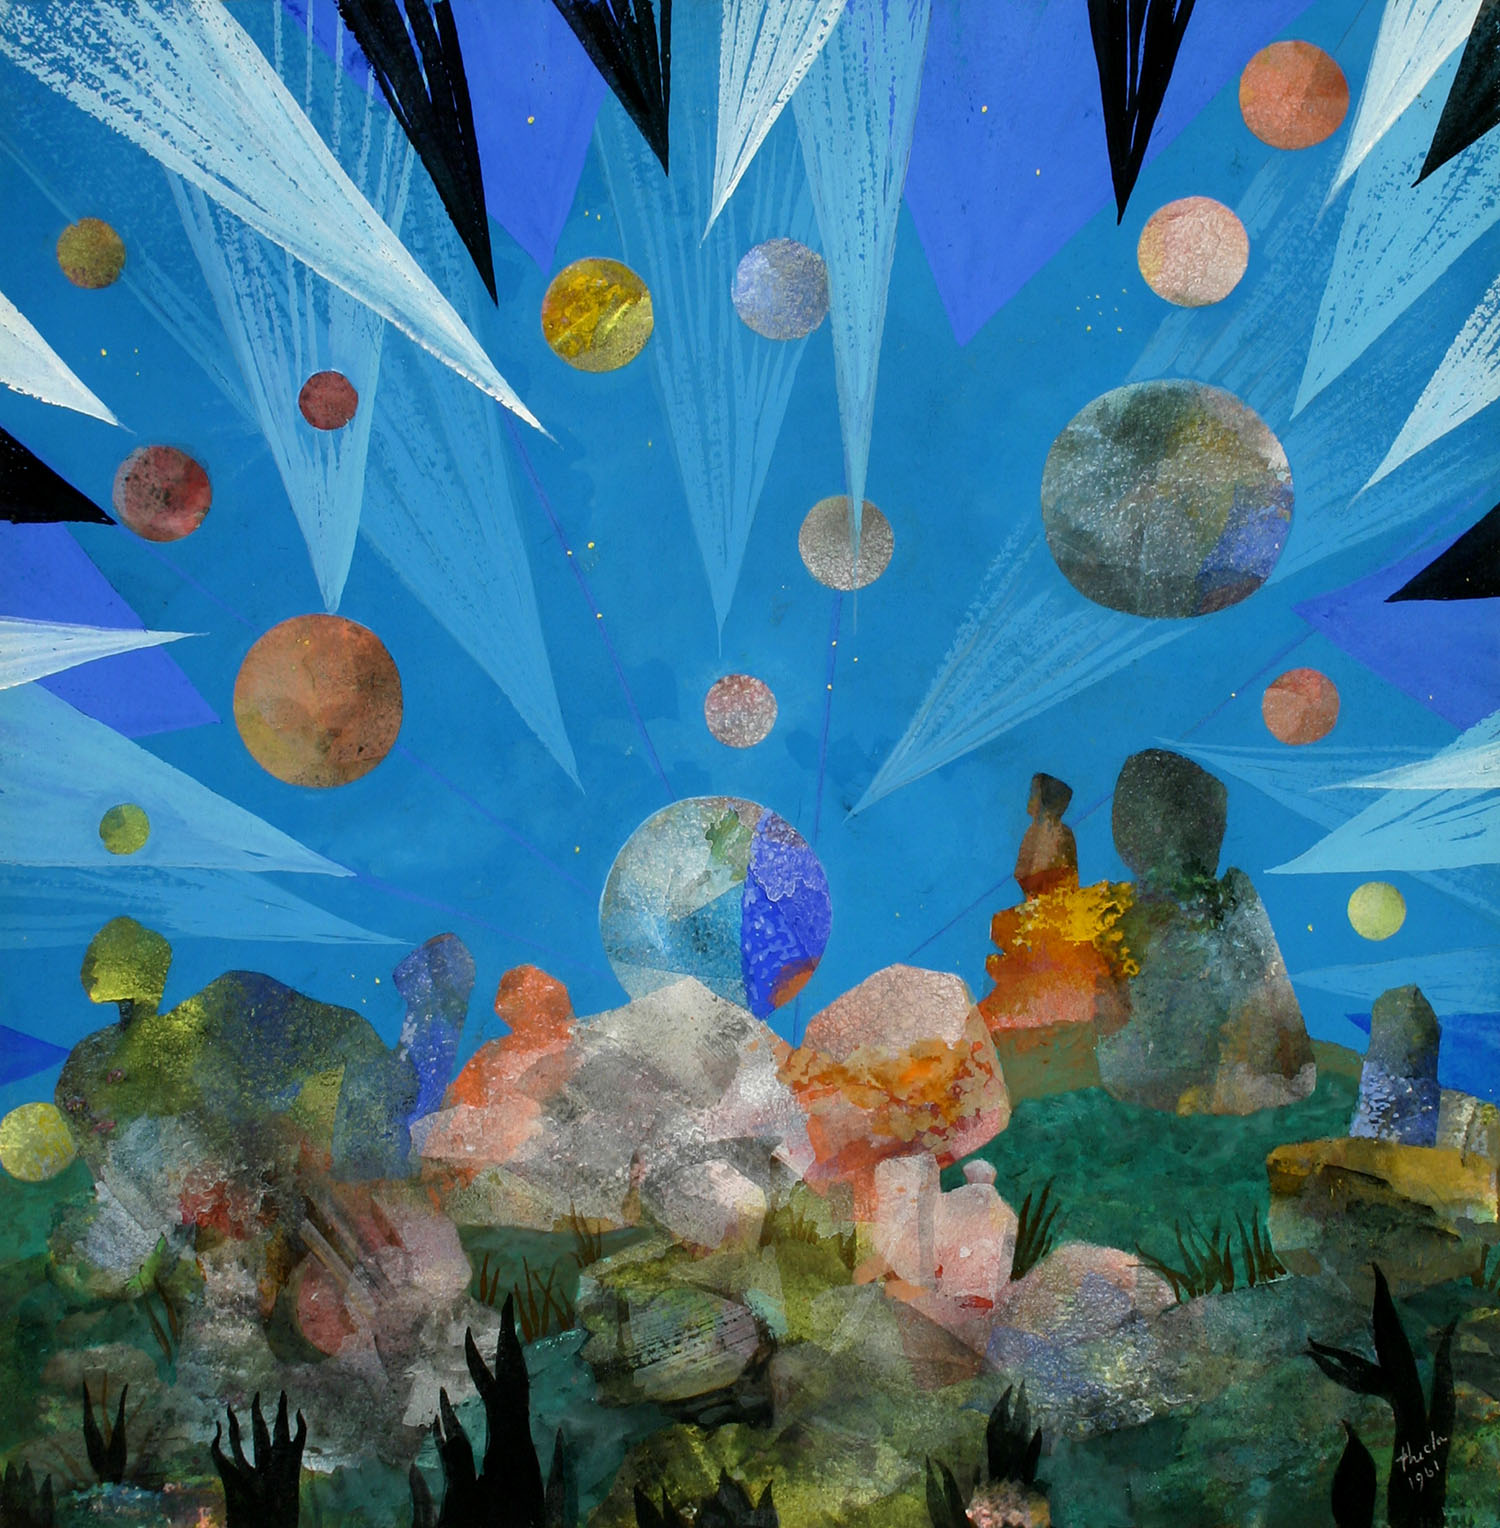 Julia Thecla, Strange Planet, 1961. Tempera on board. Collection of Depaul University, Gift of Helen T. Findlay, 5197